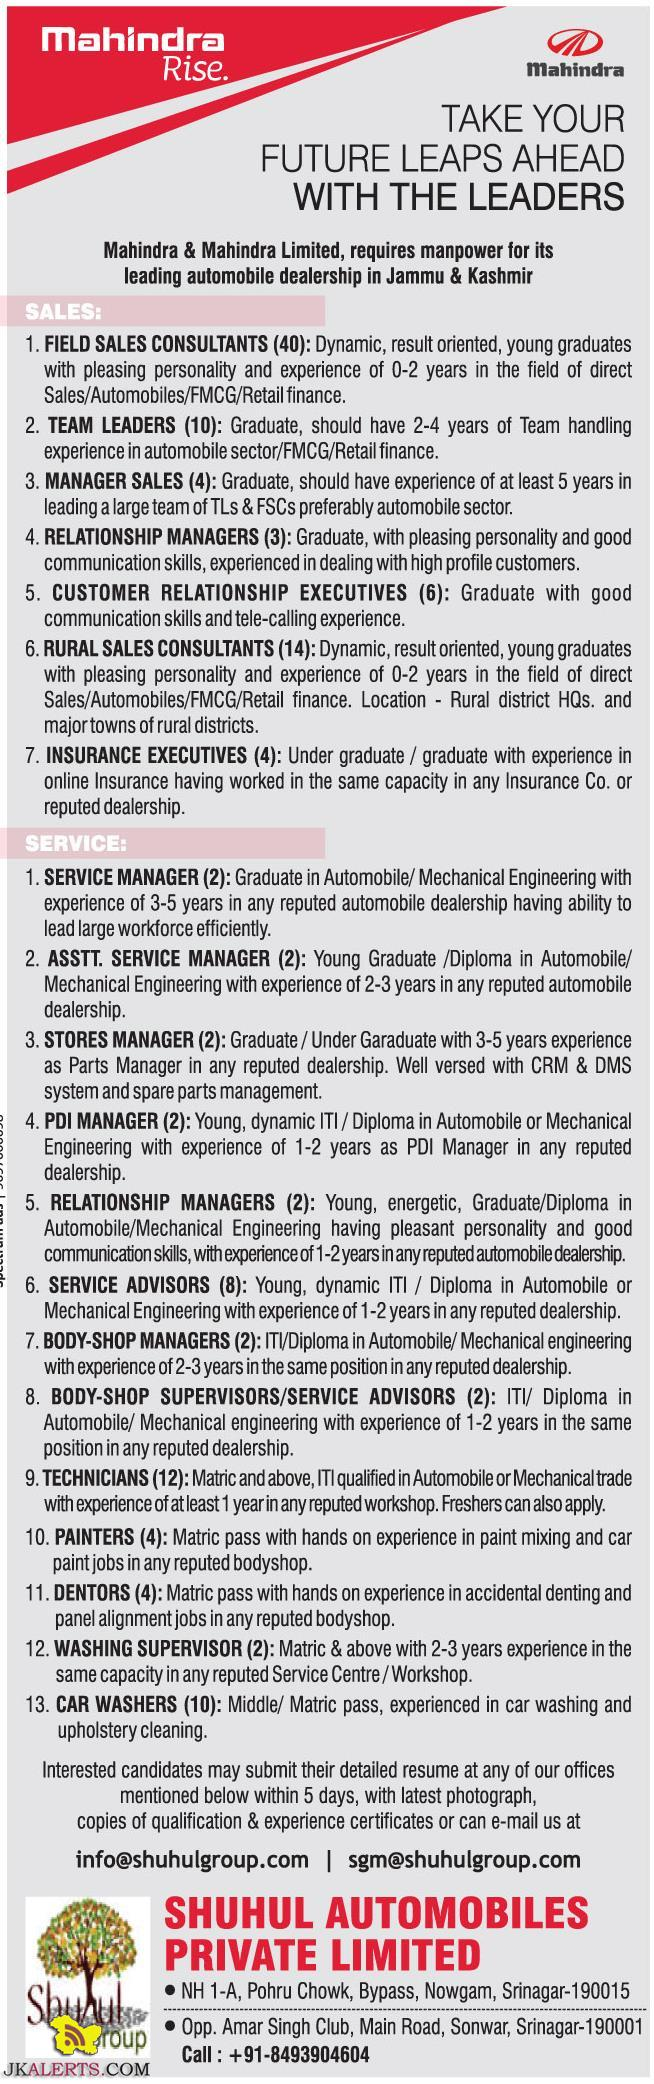 Jobs in Mahindra & Mahindra Limited, for its leading automobile dealership in J&K SHUHUL AUTOMOBILES Pvt Ltd